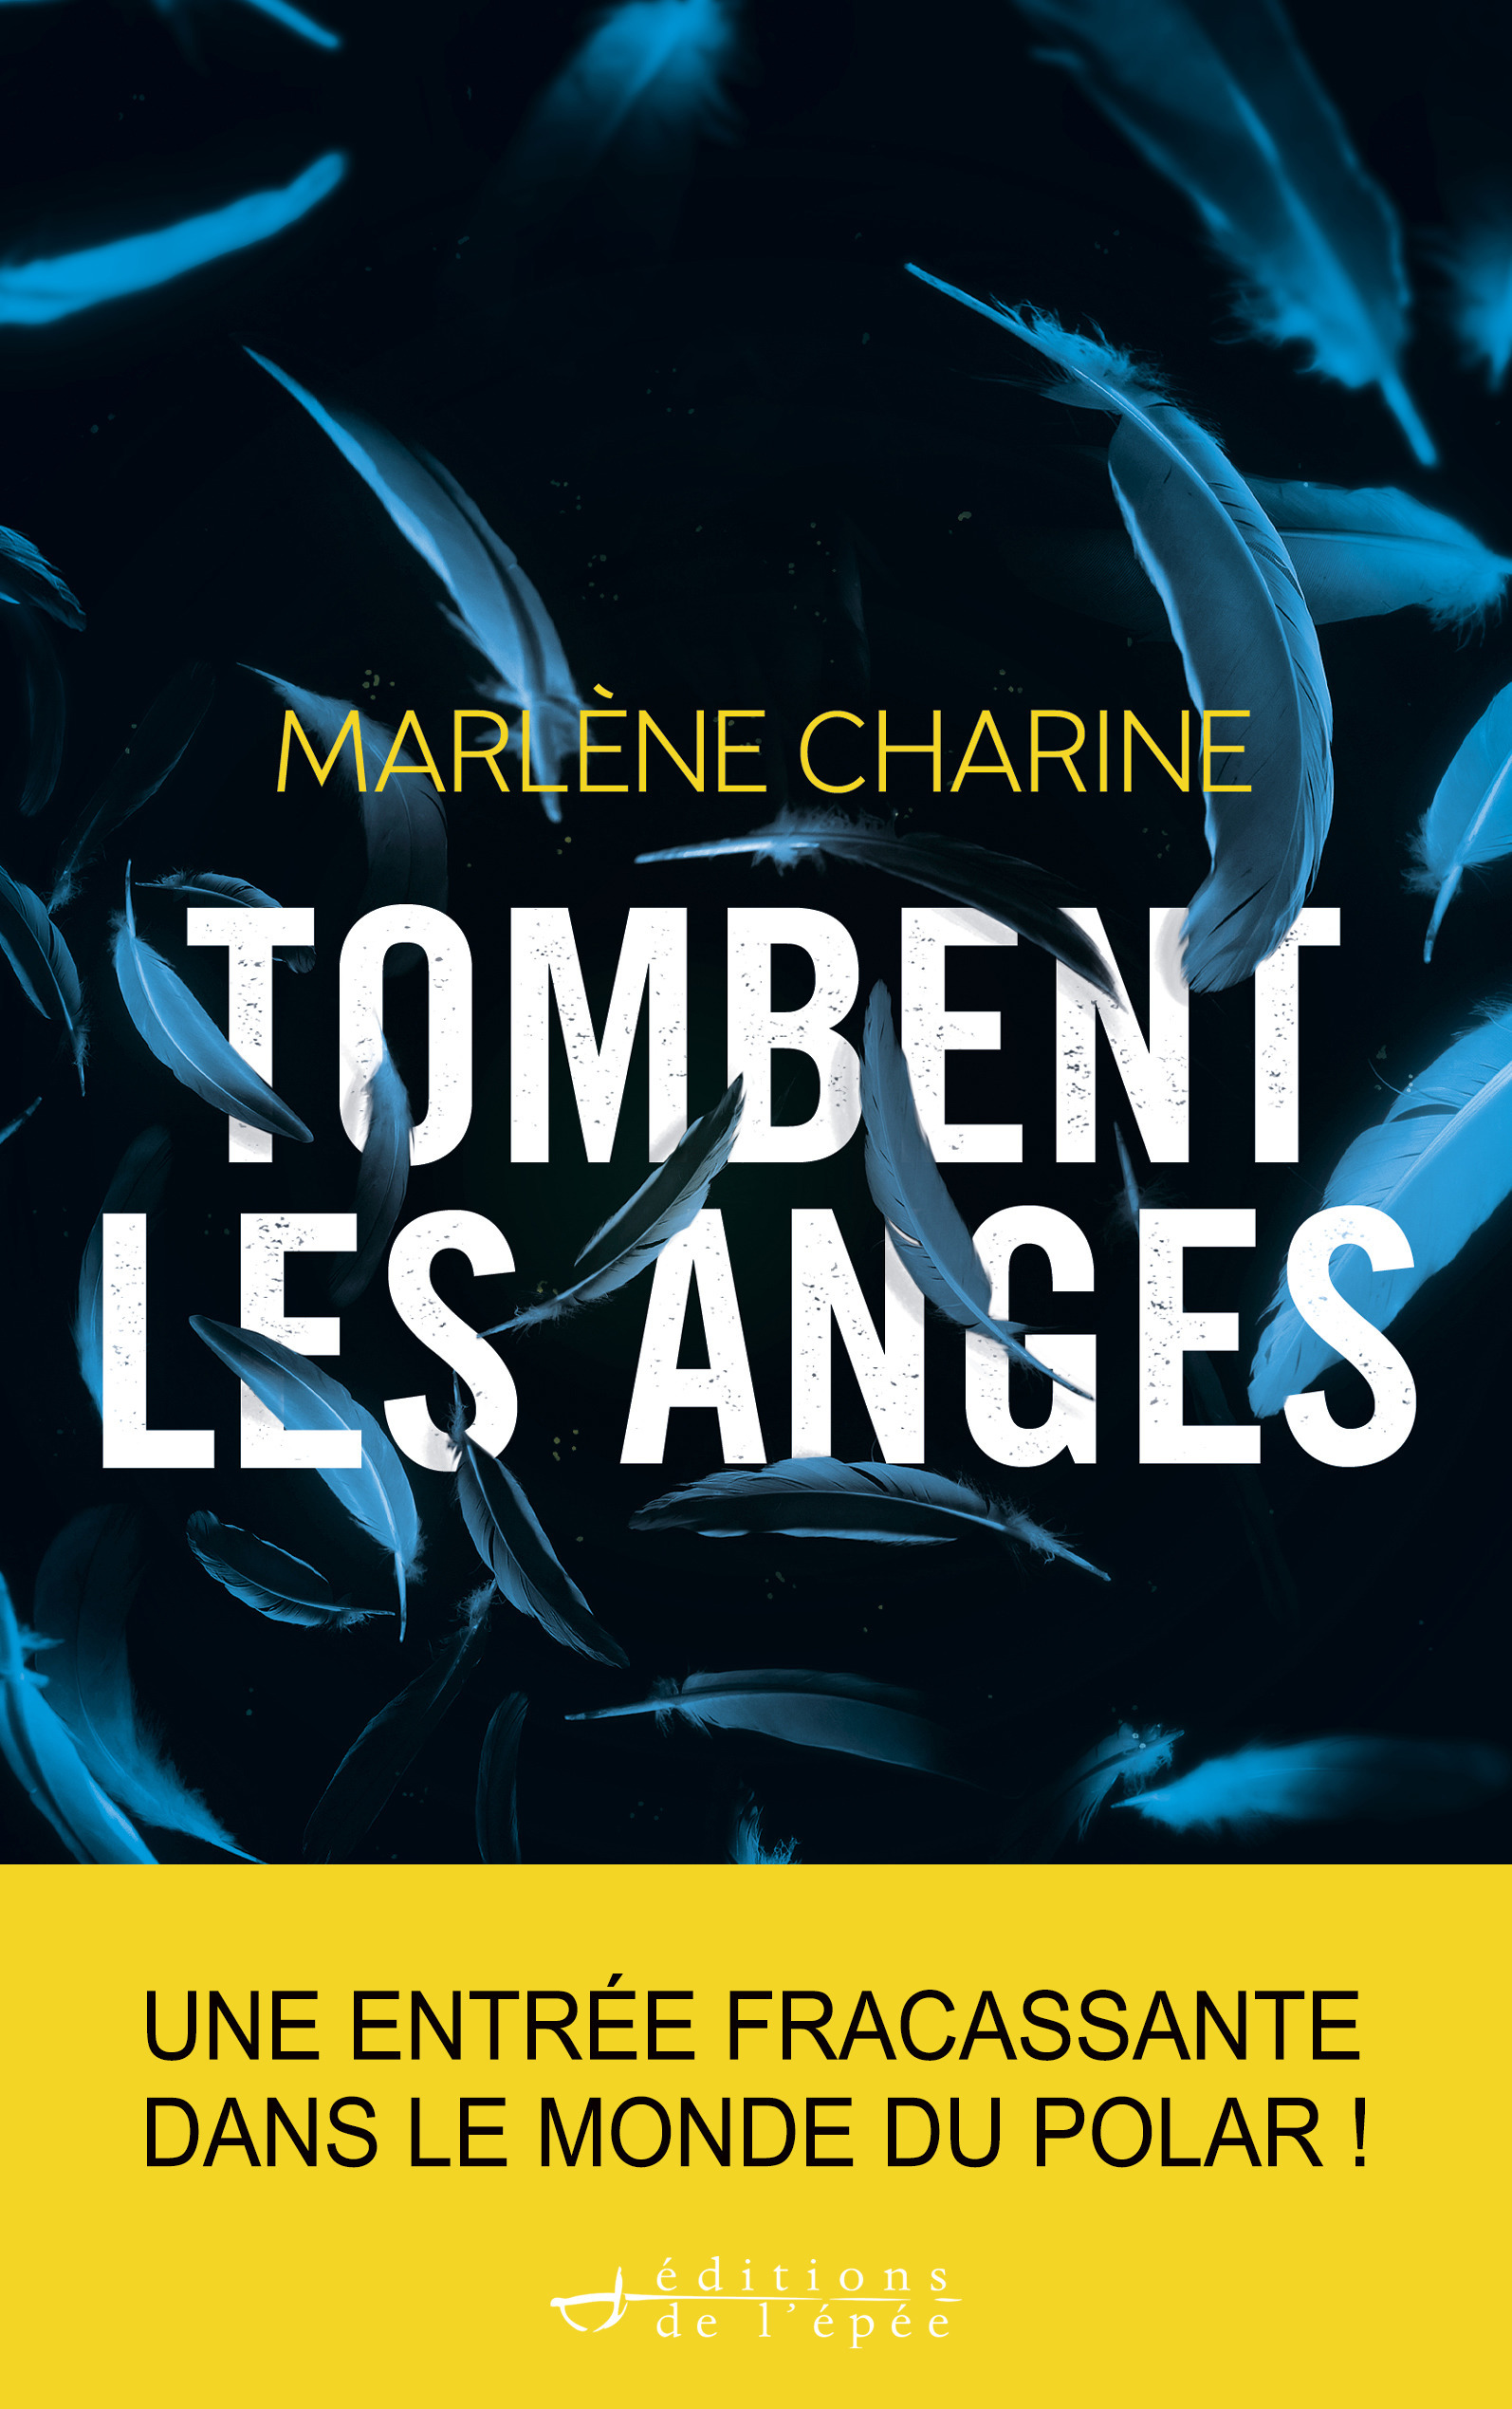 Tombent les anges - Prix du Polar romand 2020